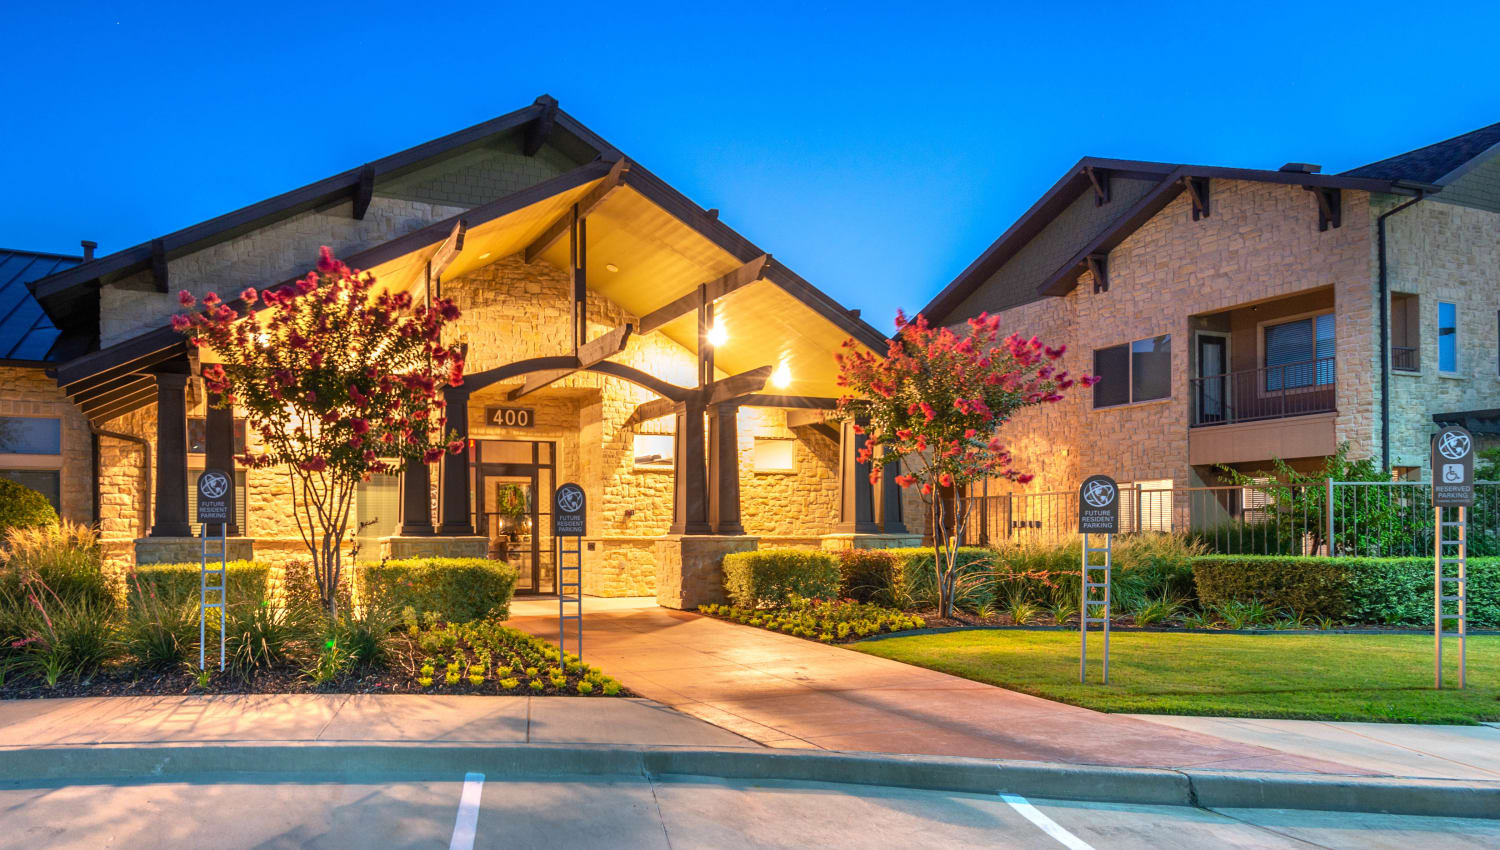 Early evening outside the clubhouse at Olympus Waterford in Keller, Texas